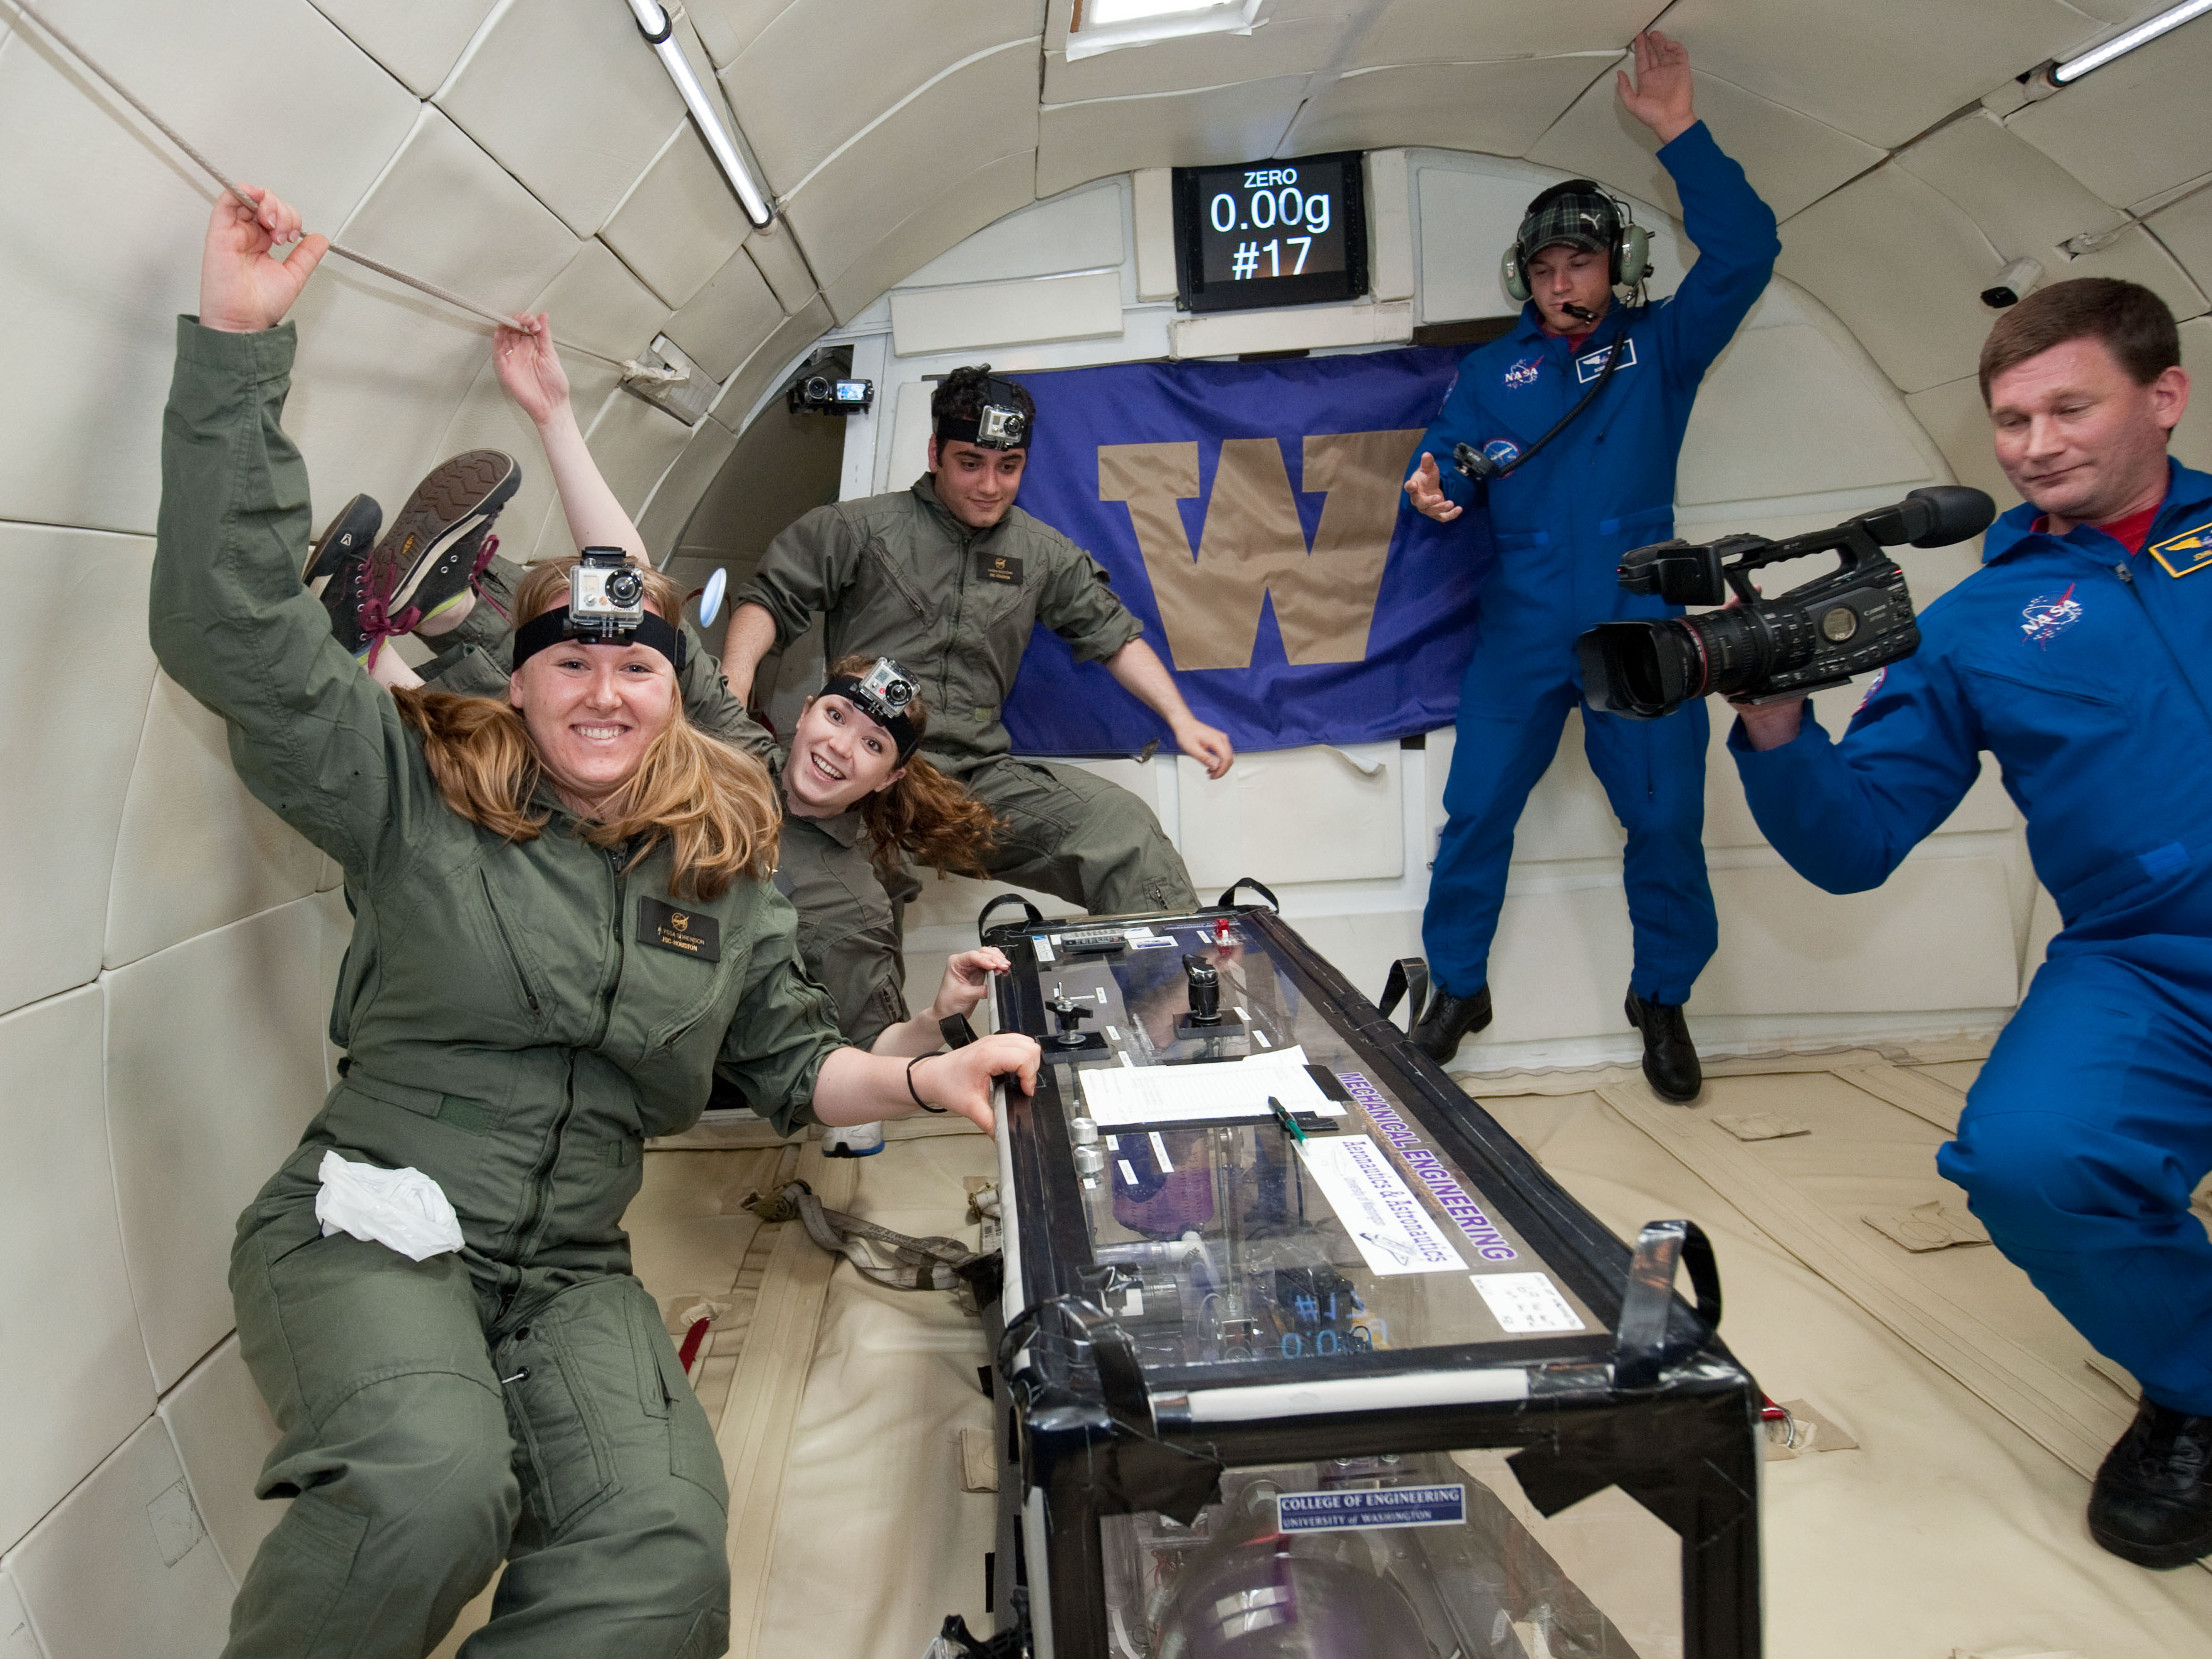 Seniors Alyssa Sorenson, Jamie Waldock and Sasan Boostani with the experiment they built to test in microgravity. The monitor on the wall shows that the gravity is zero. NASA employees accompanied the students and filmed the experiments.